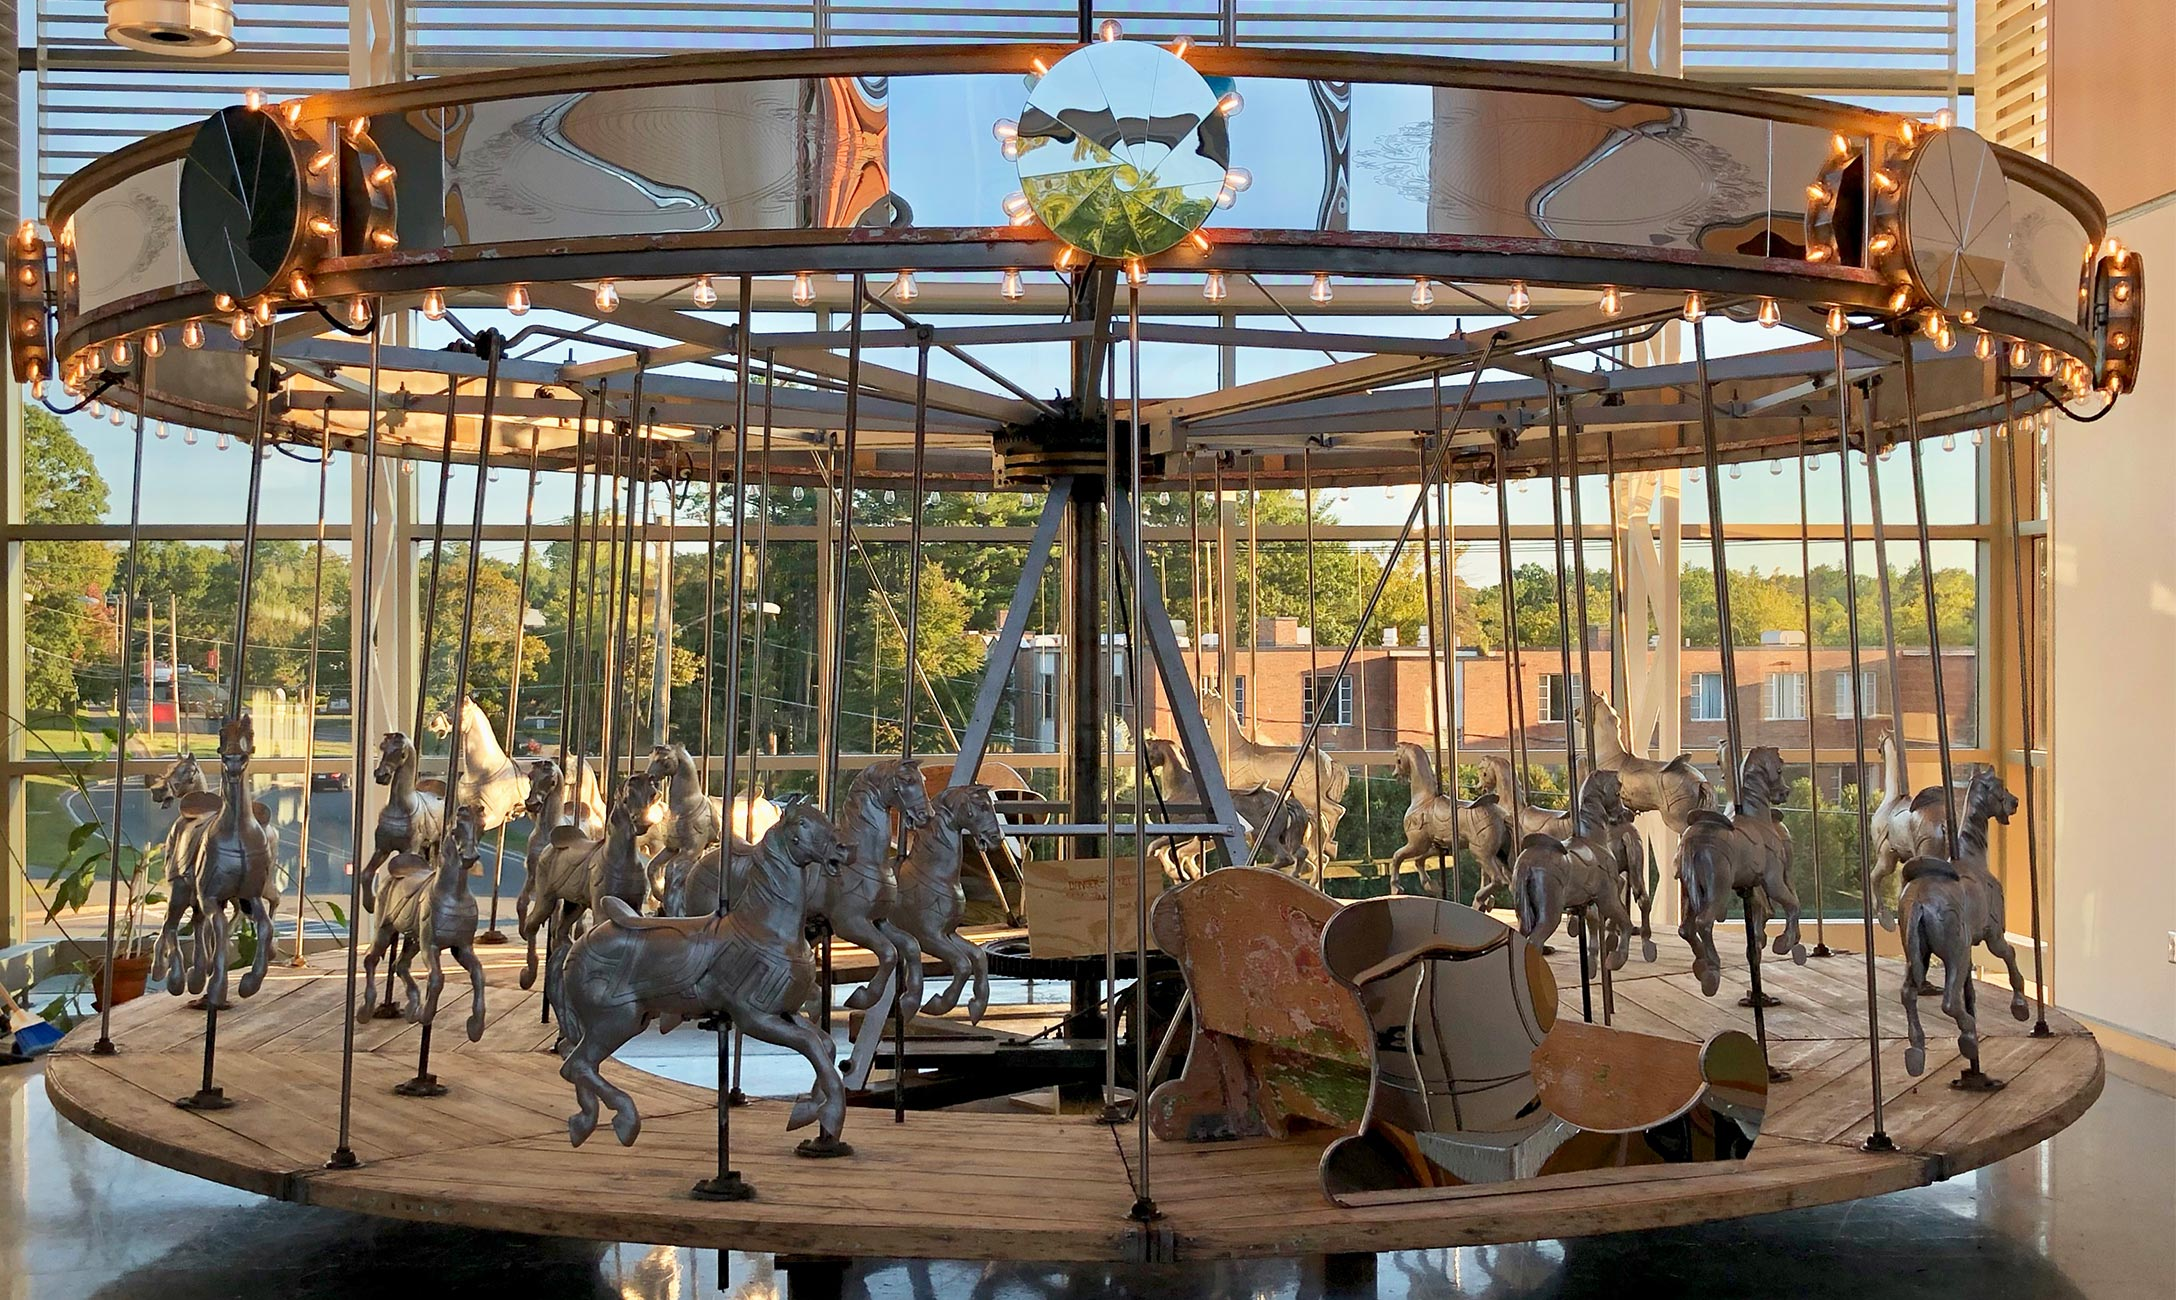 Refurbished carousel in front of large windows.